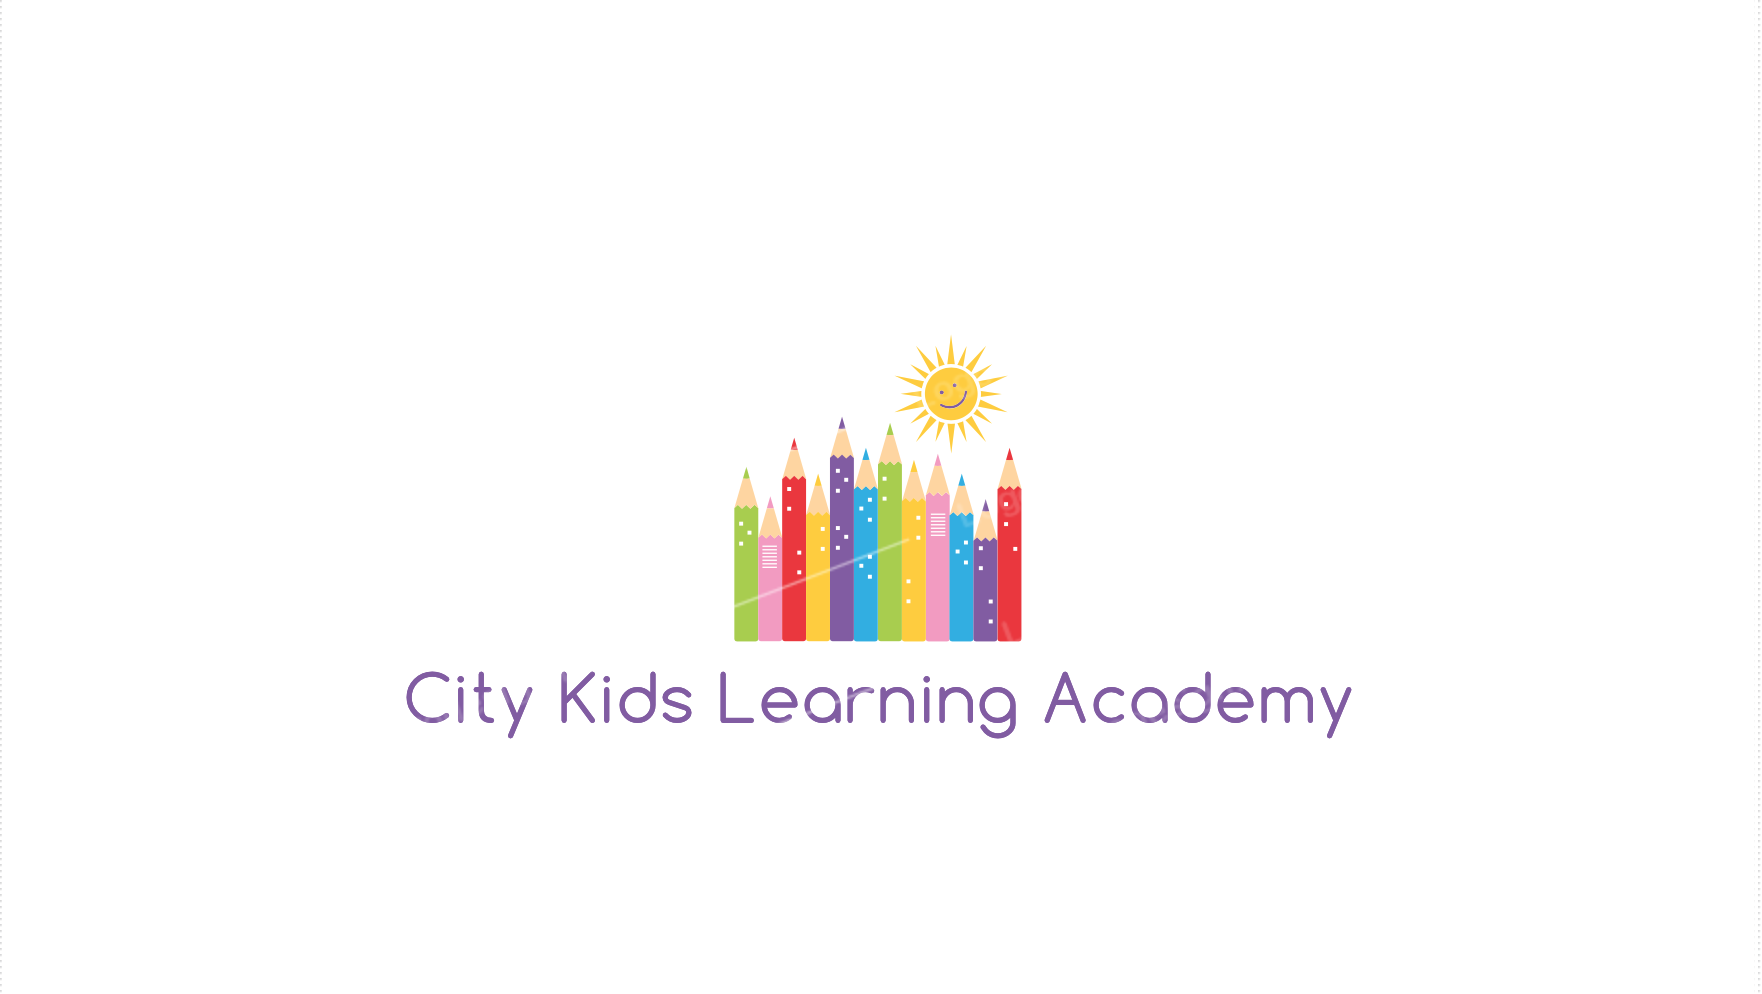 City Kids Learning Academy